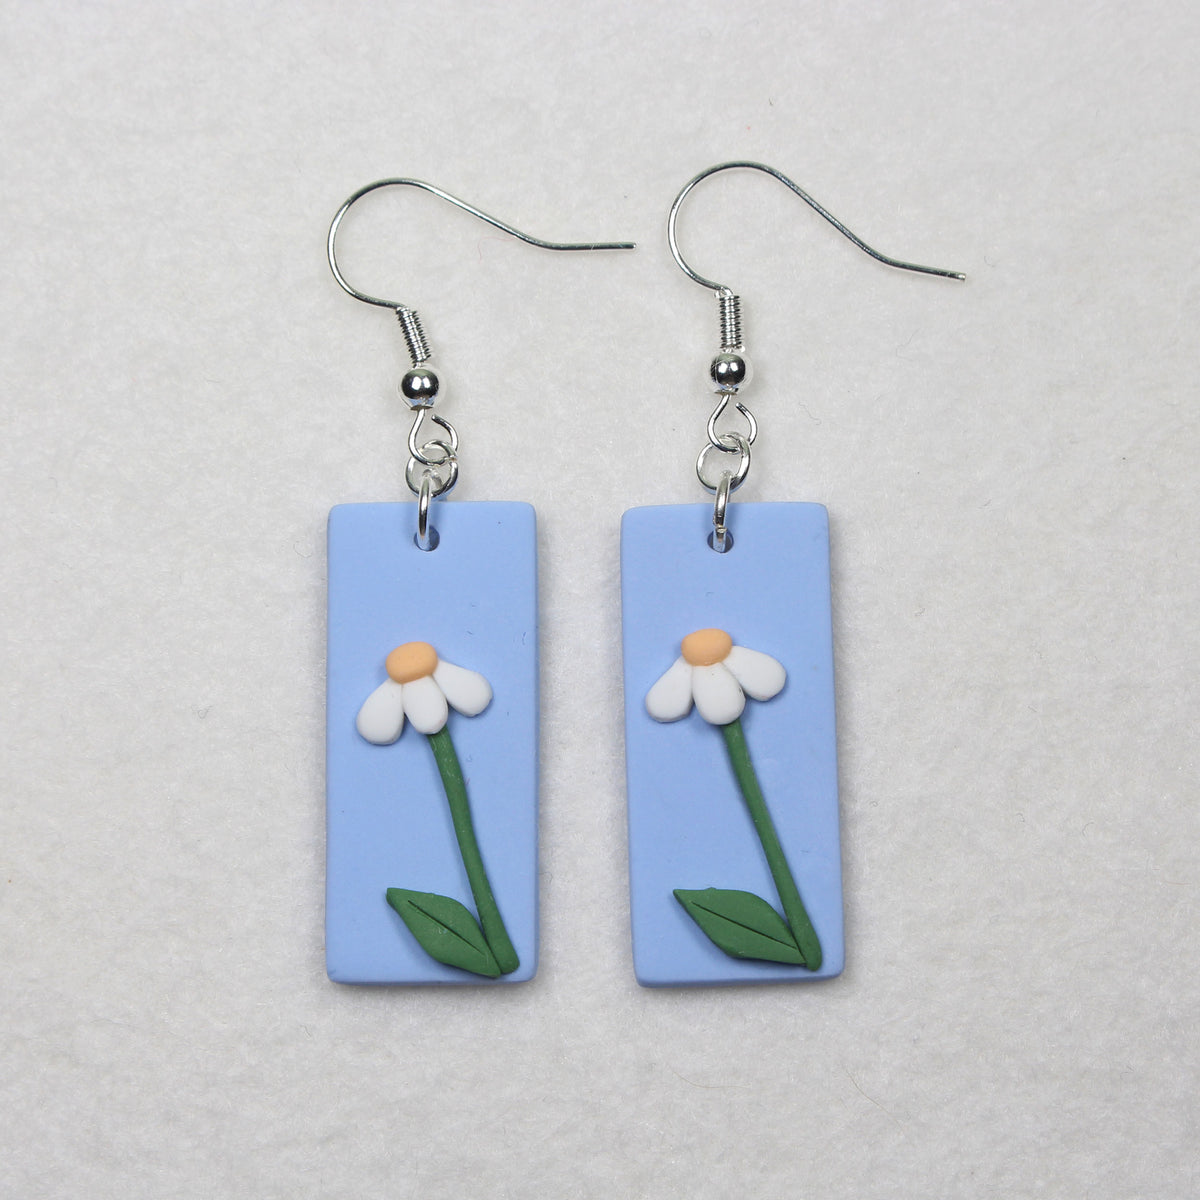 Daisy in the Wind Hook Earrings. Tall daisies with stem and leaves standing in field